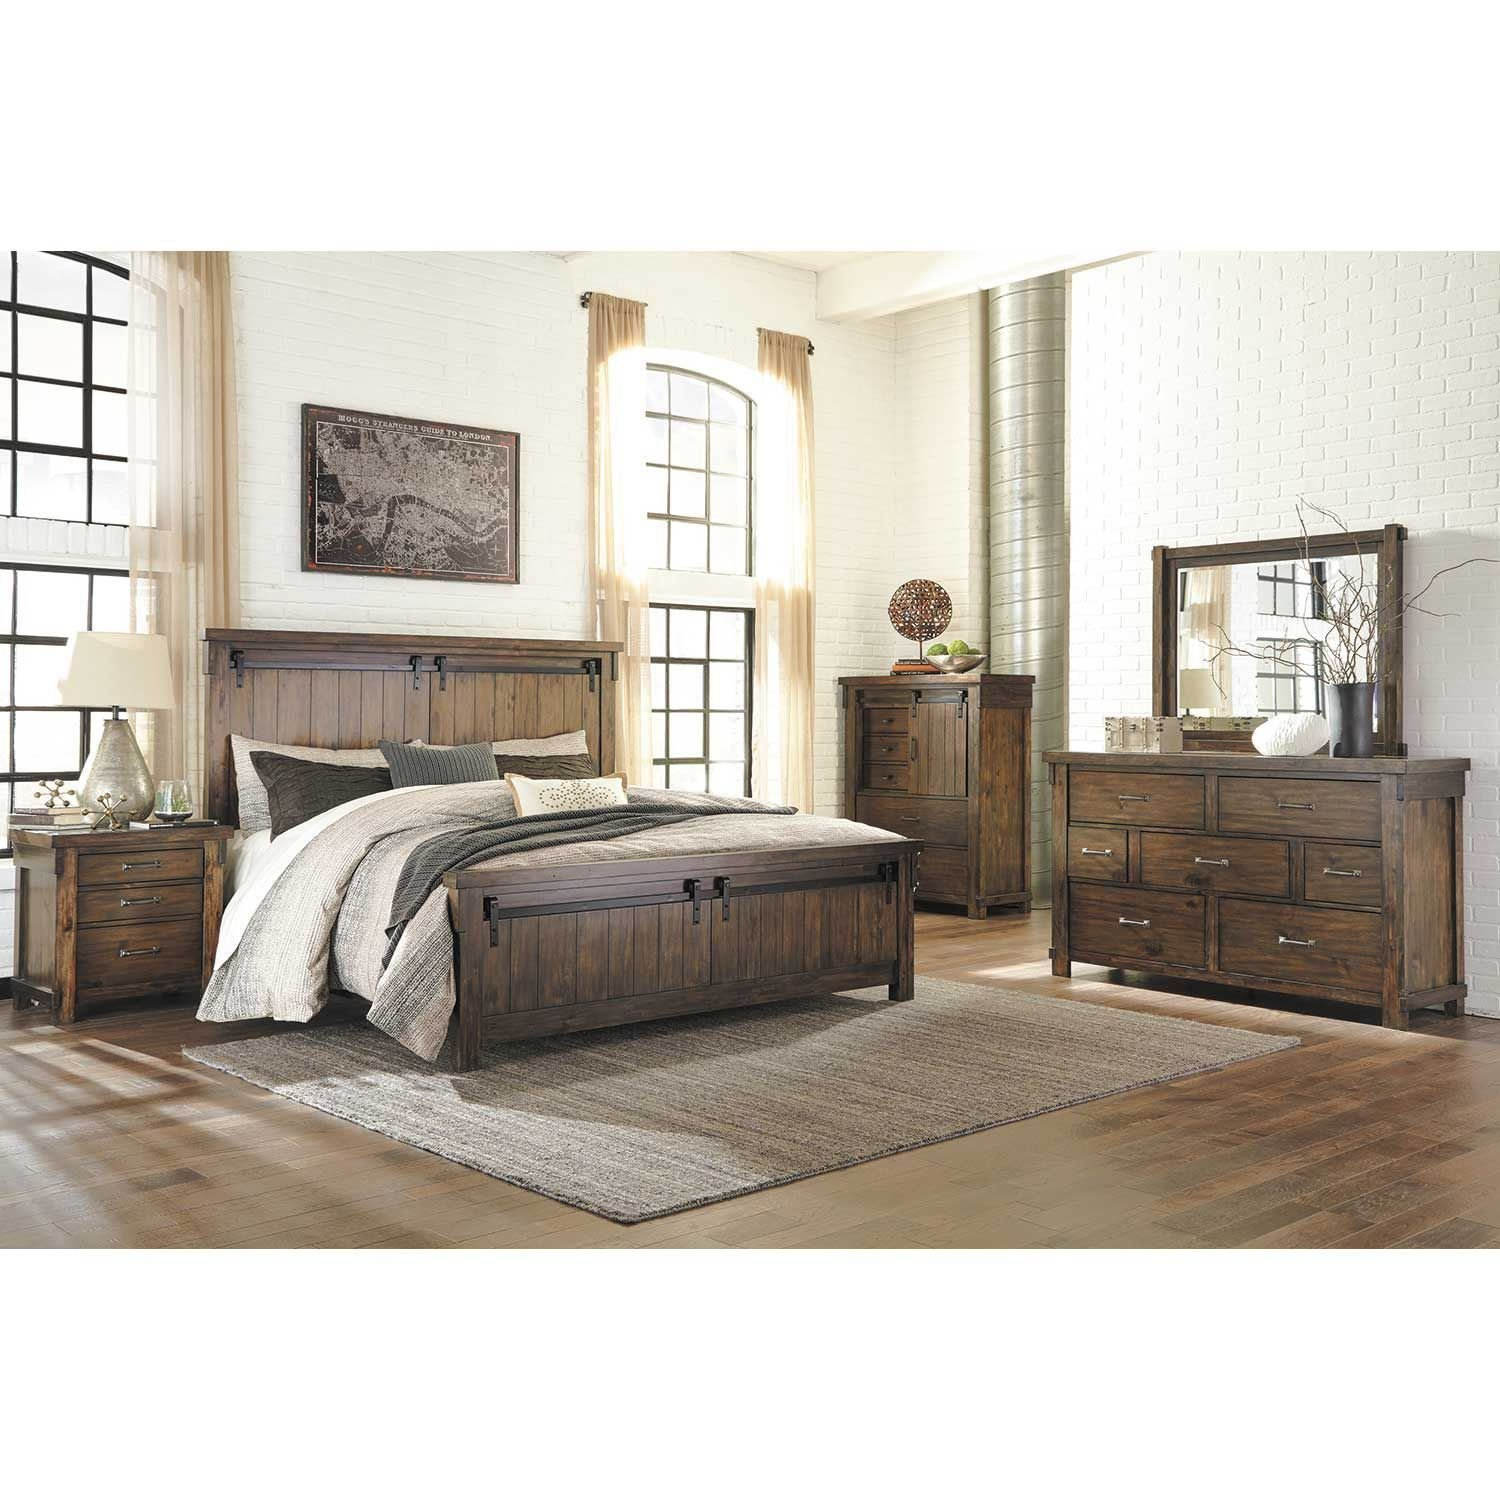 Lakeleigh 5 Piece Bedroom Set | B718-QBED/31/36/46/93 | Ashley ...